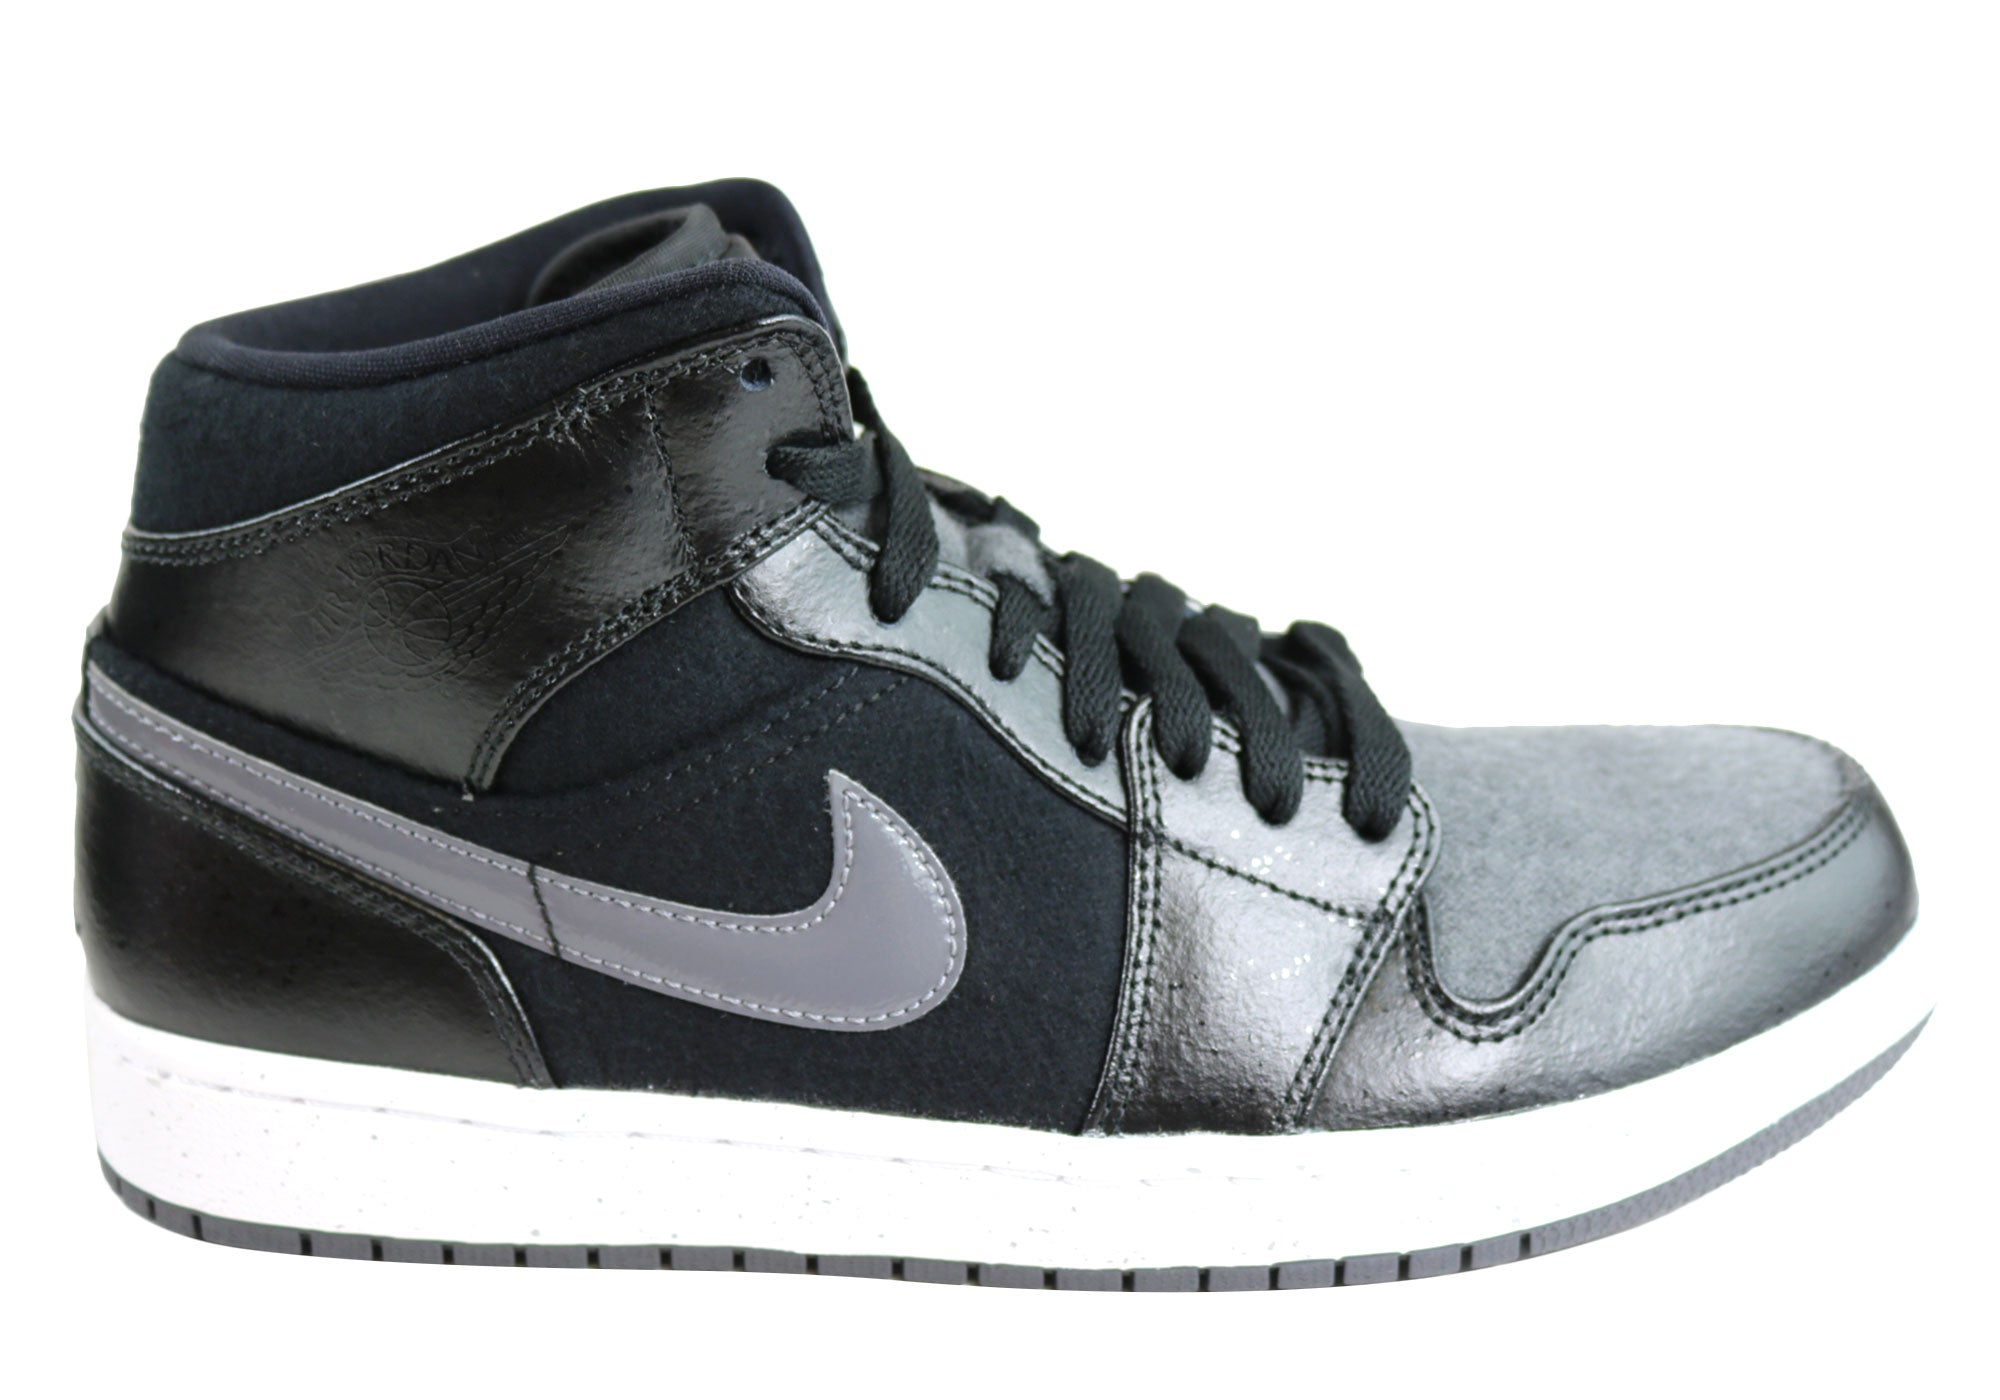 f62924ac4e3c Home Nike Air Jordan 1 Mid Premium Hi Tops Basketball Shoes. Sale ends in  41 days